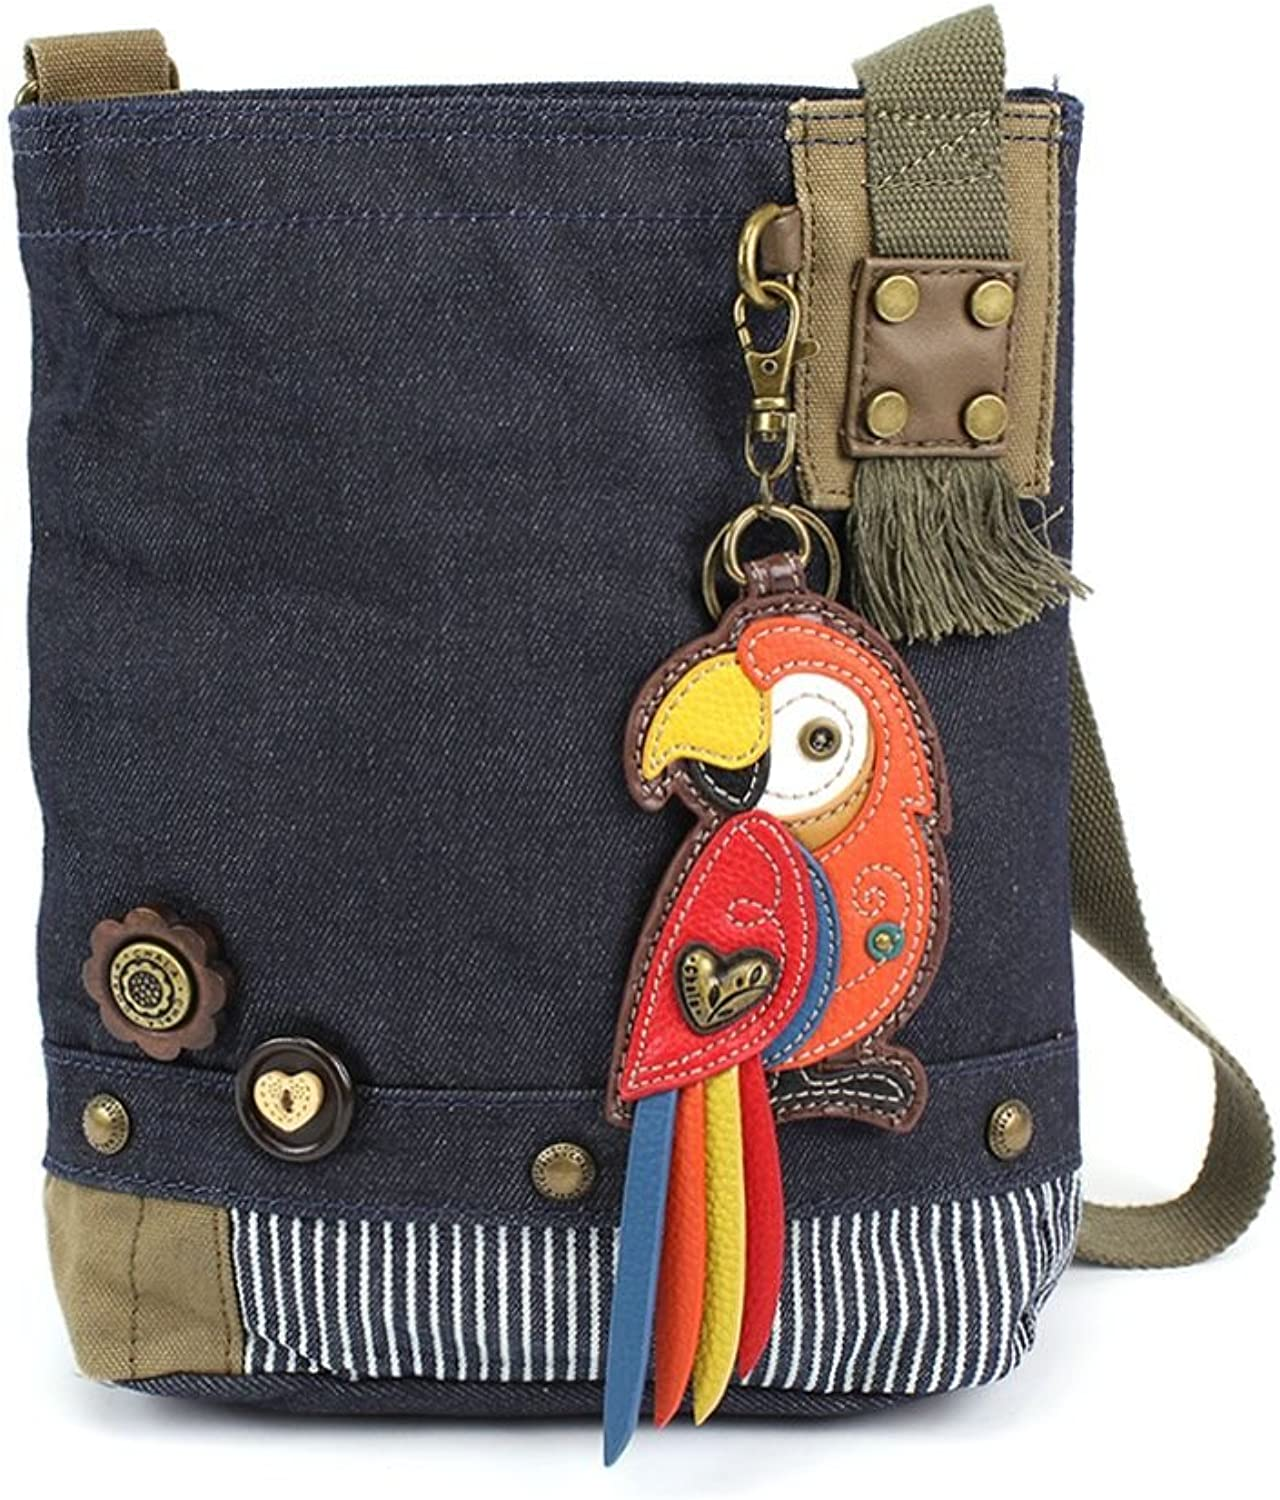 Chala Womens' Canvas Patch Crossbody Handbag Red Parred   Denim bluee